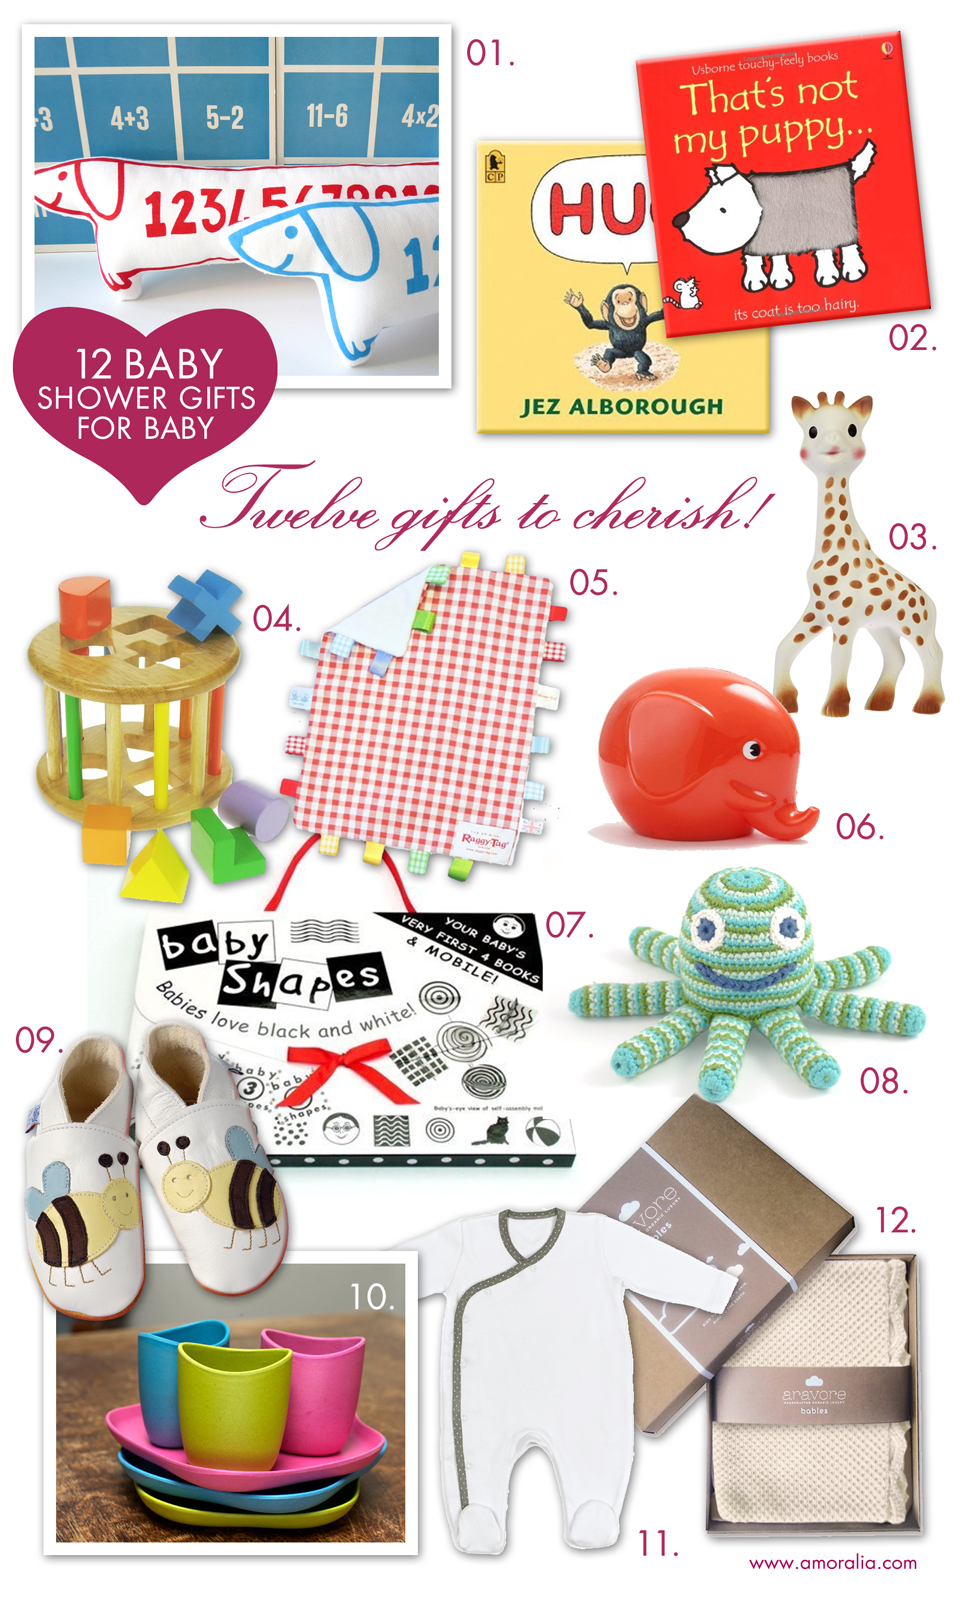 Baby Shower Gifts for Baby